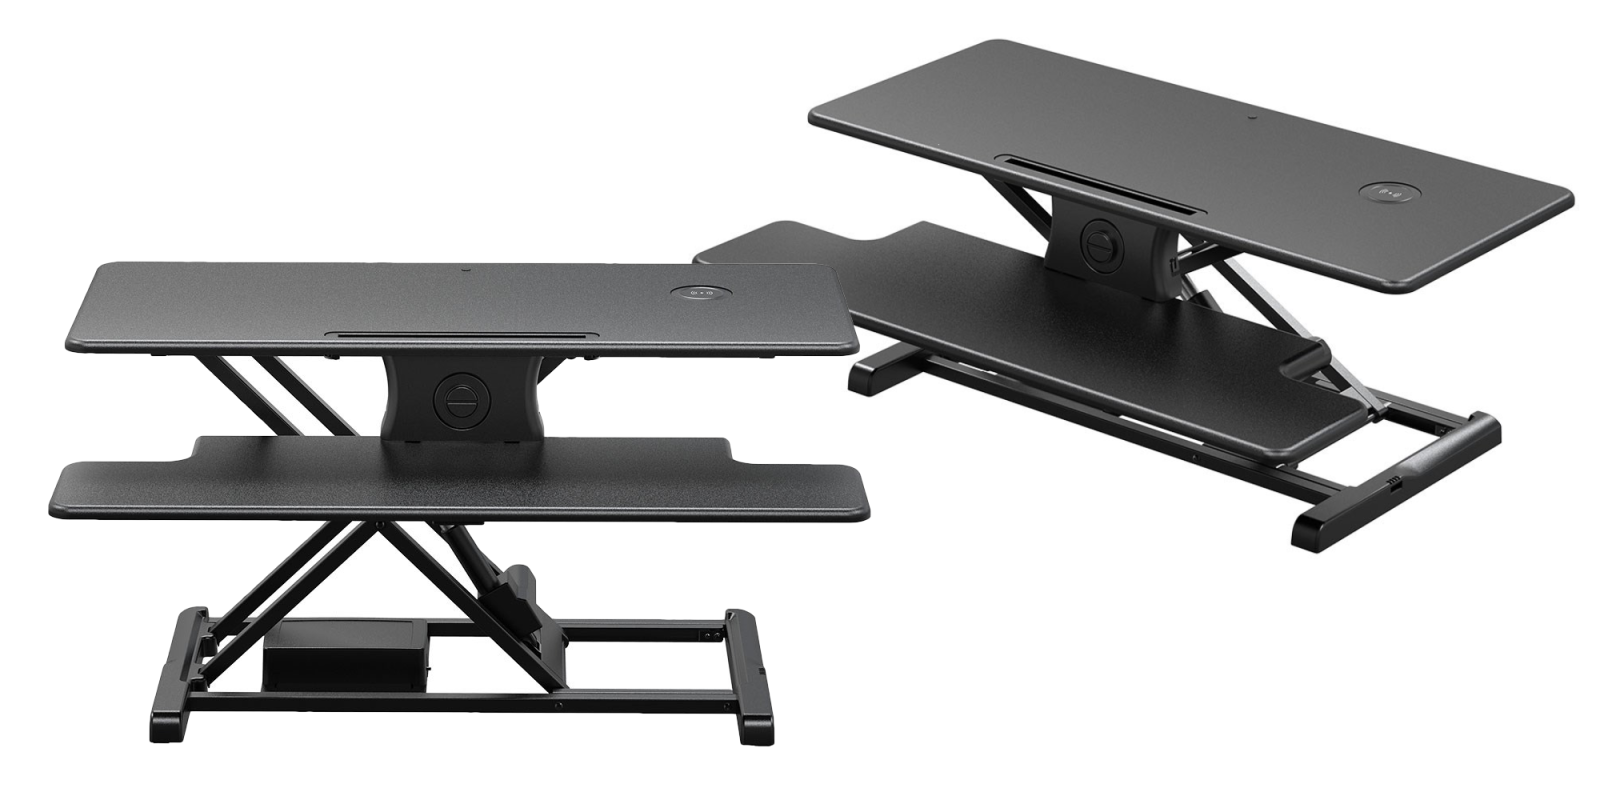 Monoprice's Electric Sit-Stand Desk Converter has a built-in Qi charger at $136 (Reg. $160)